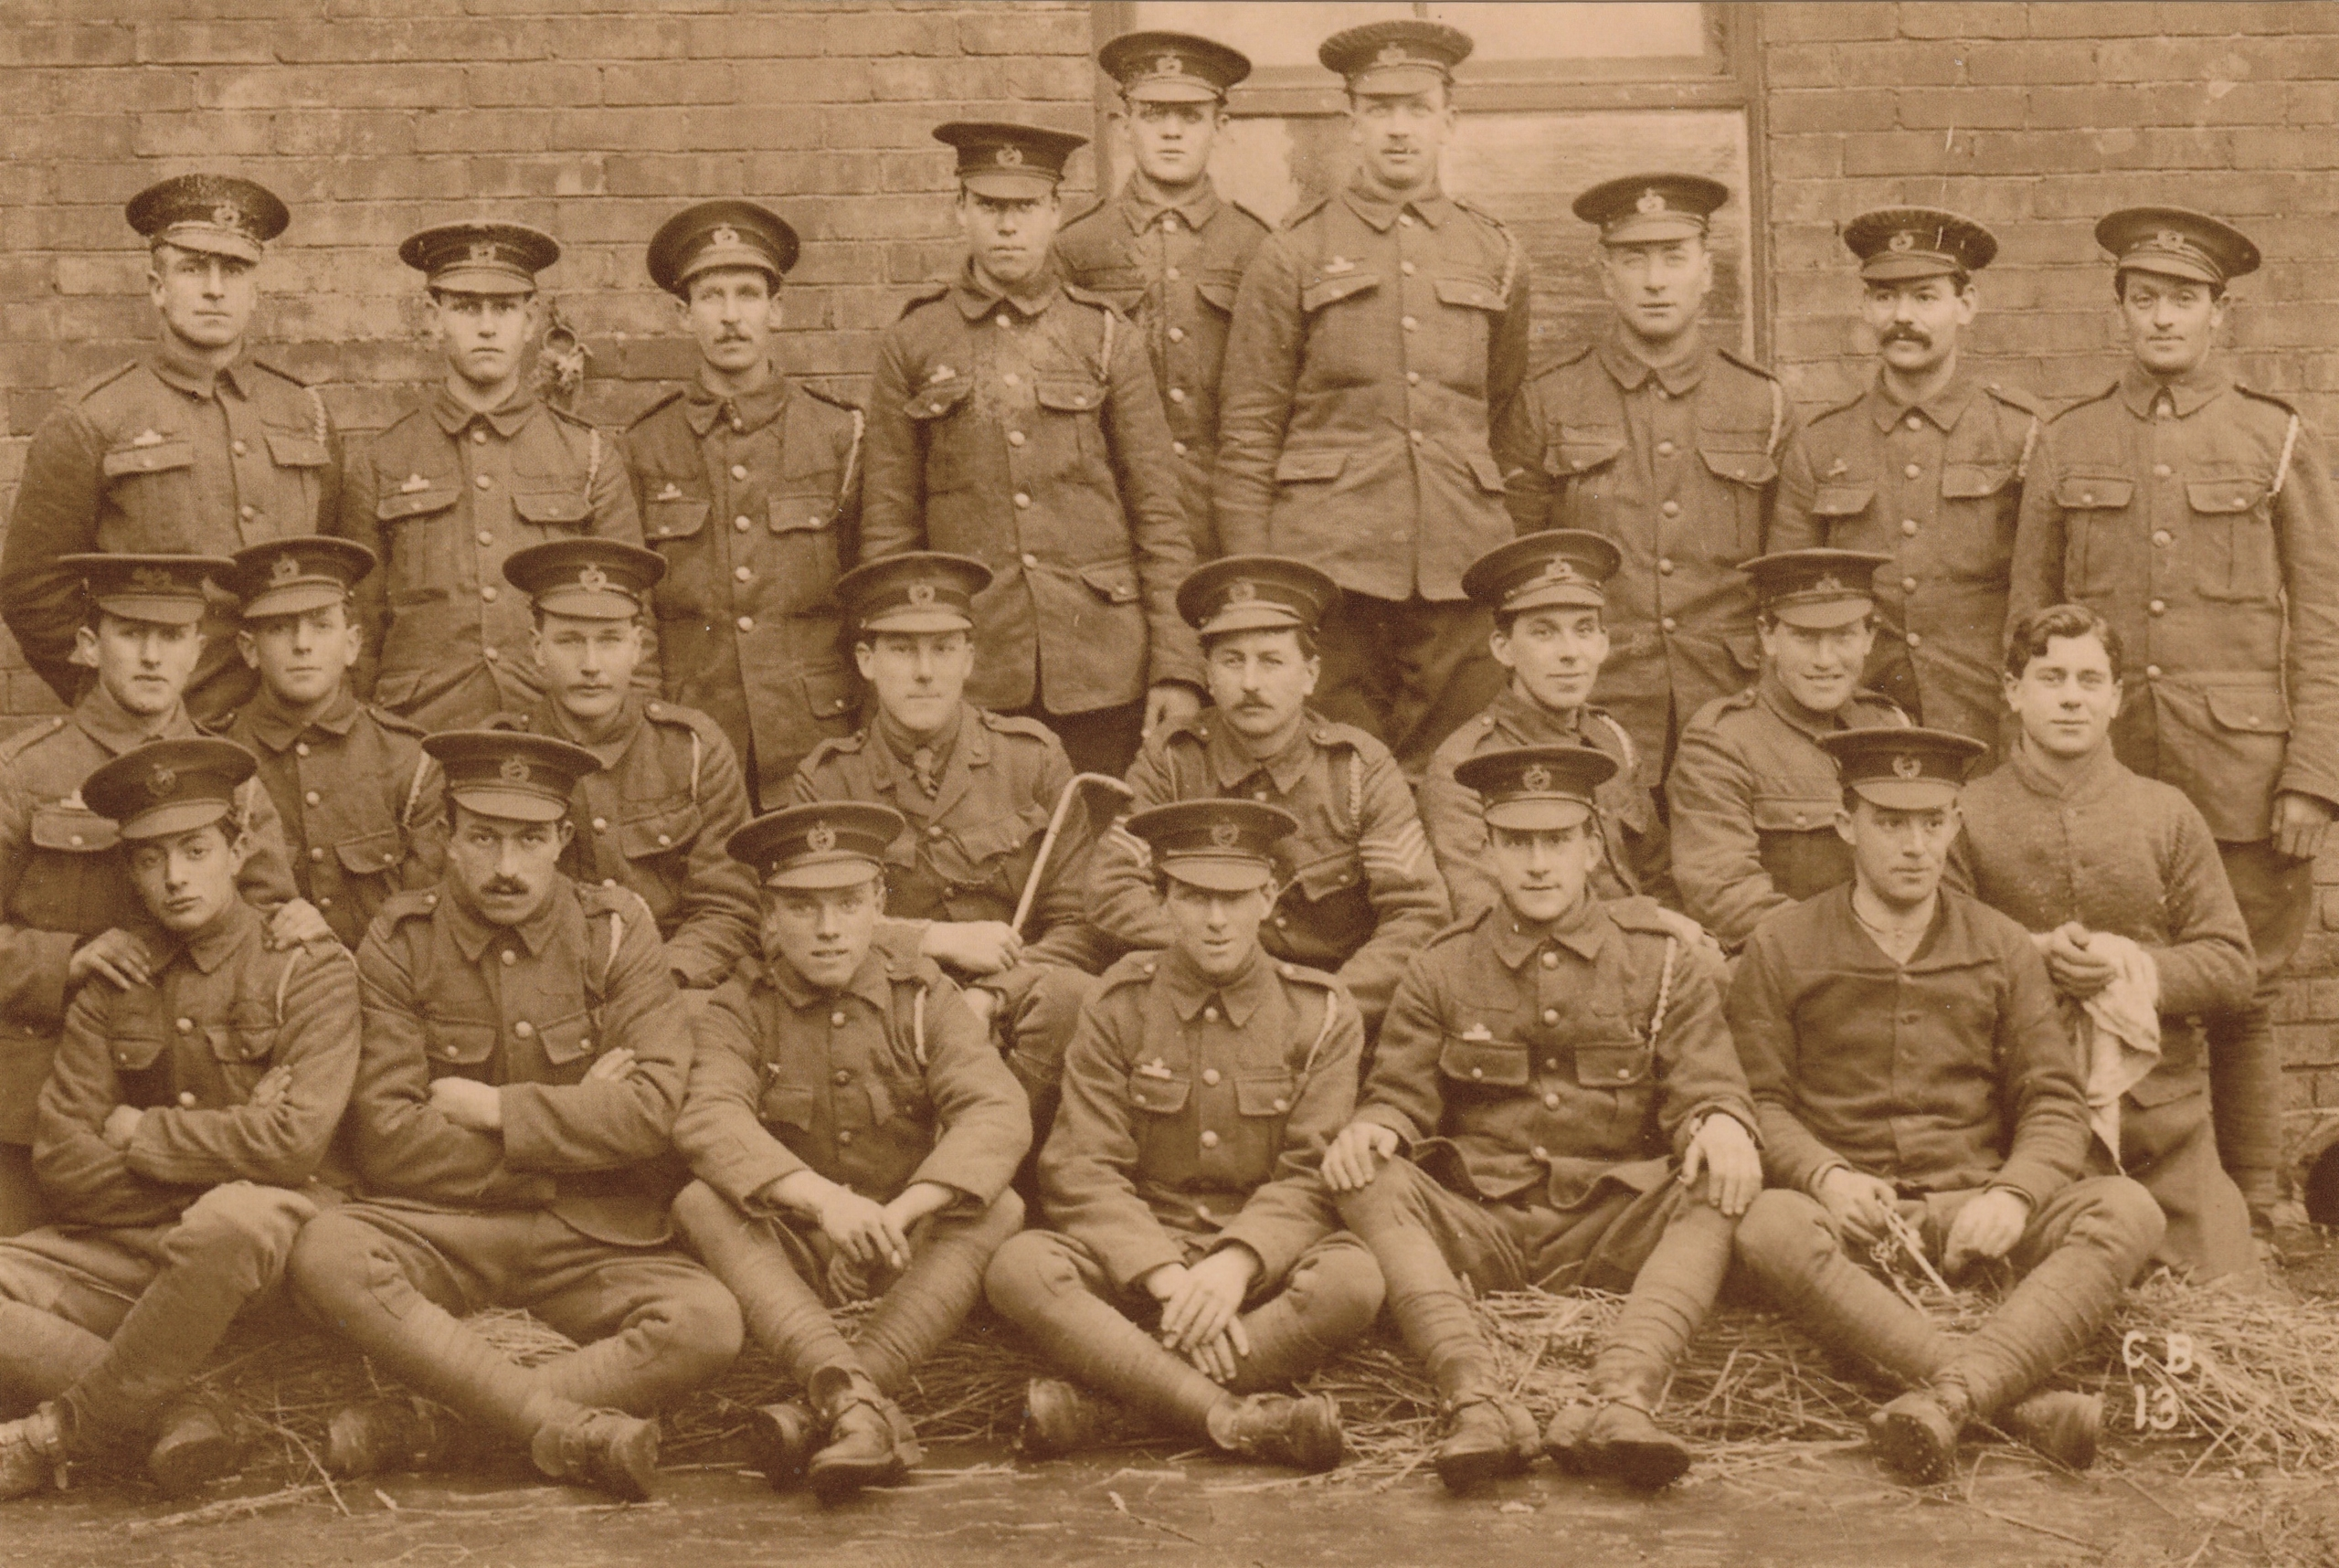 James John Garrett, 4th from right in middle row